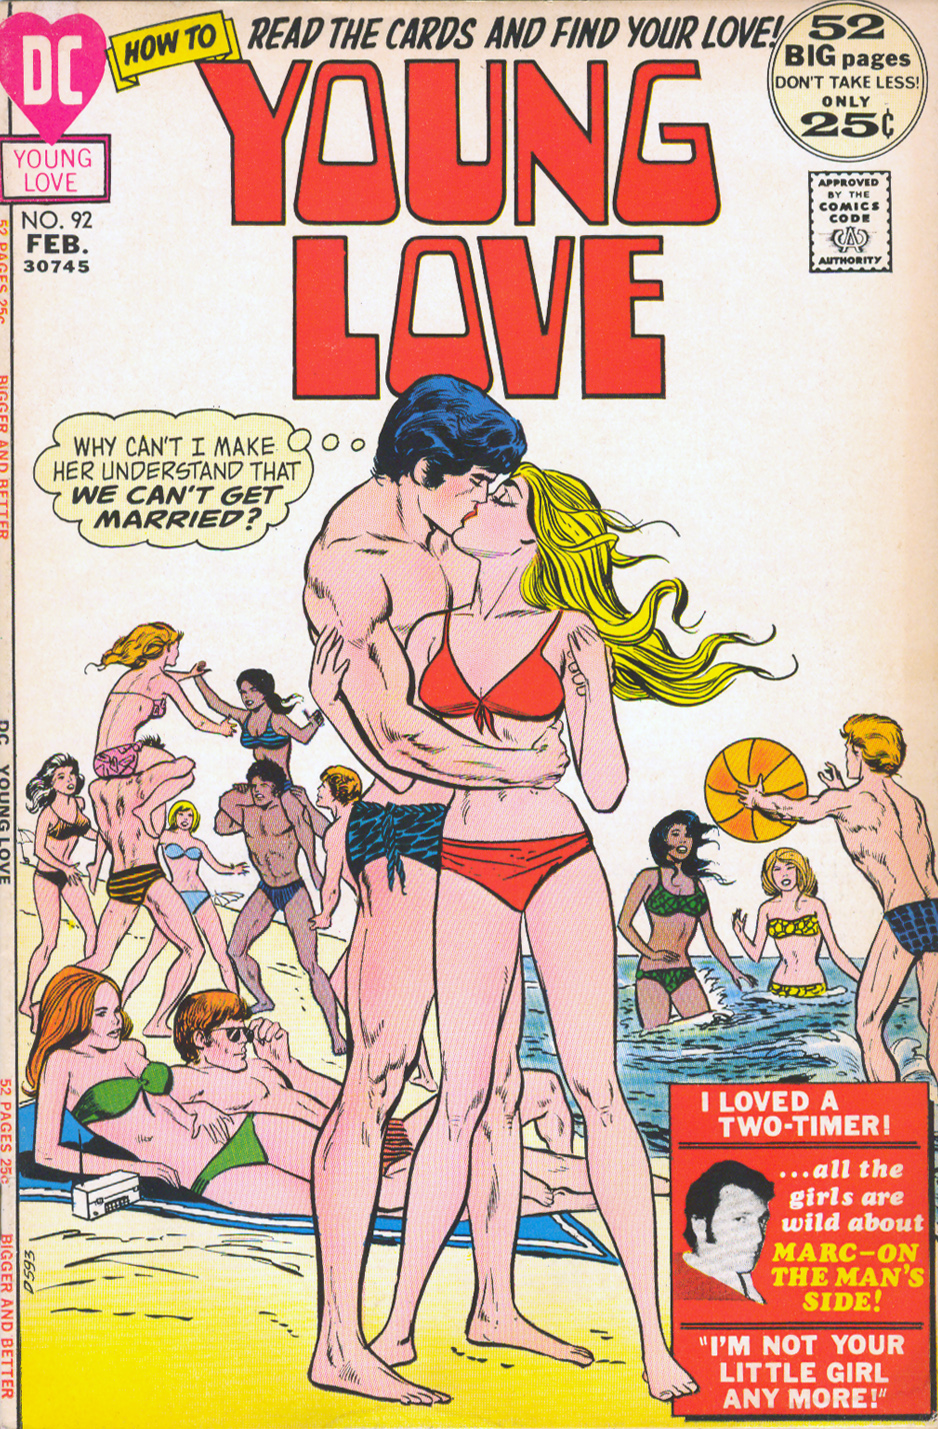 Young Love #92 (February 1972)